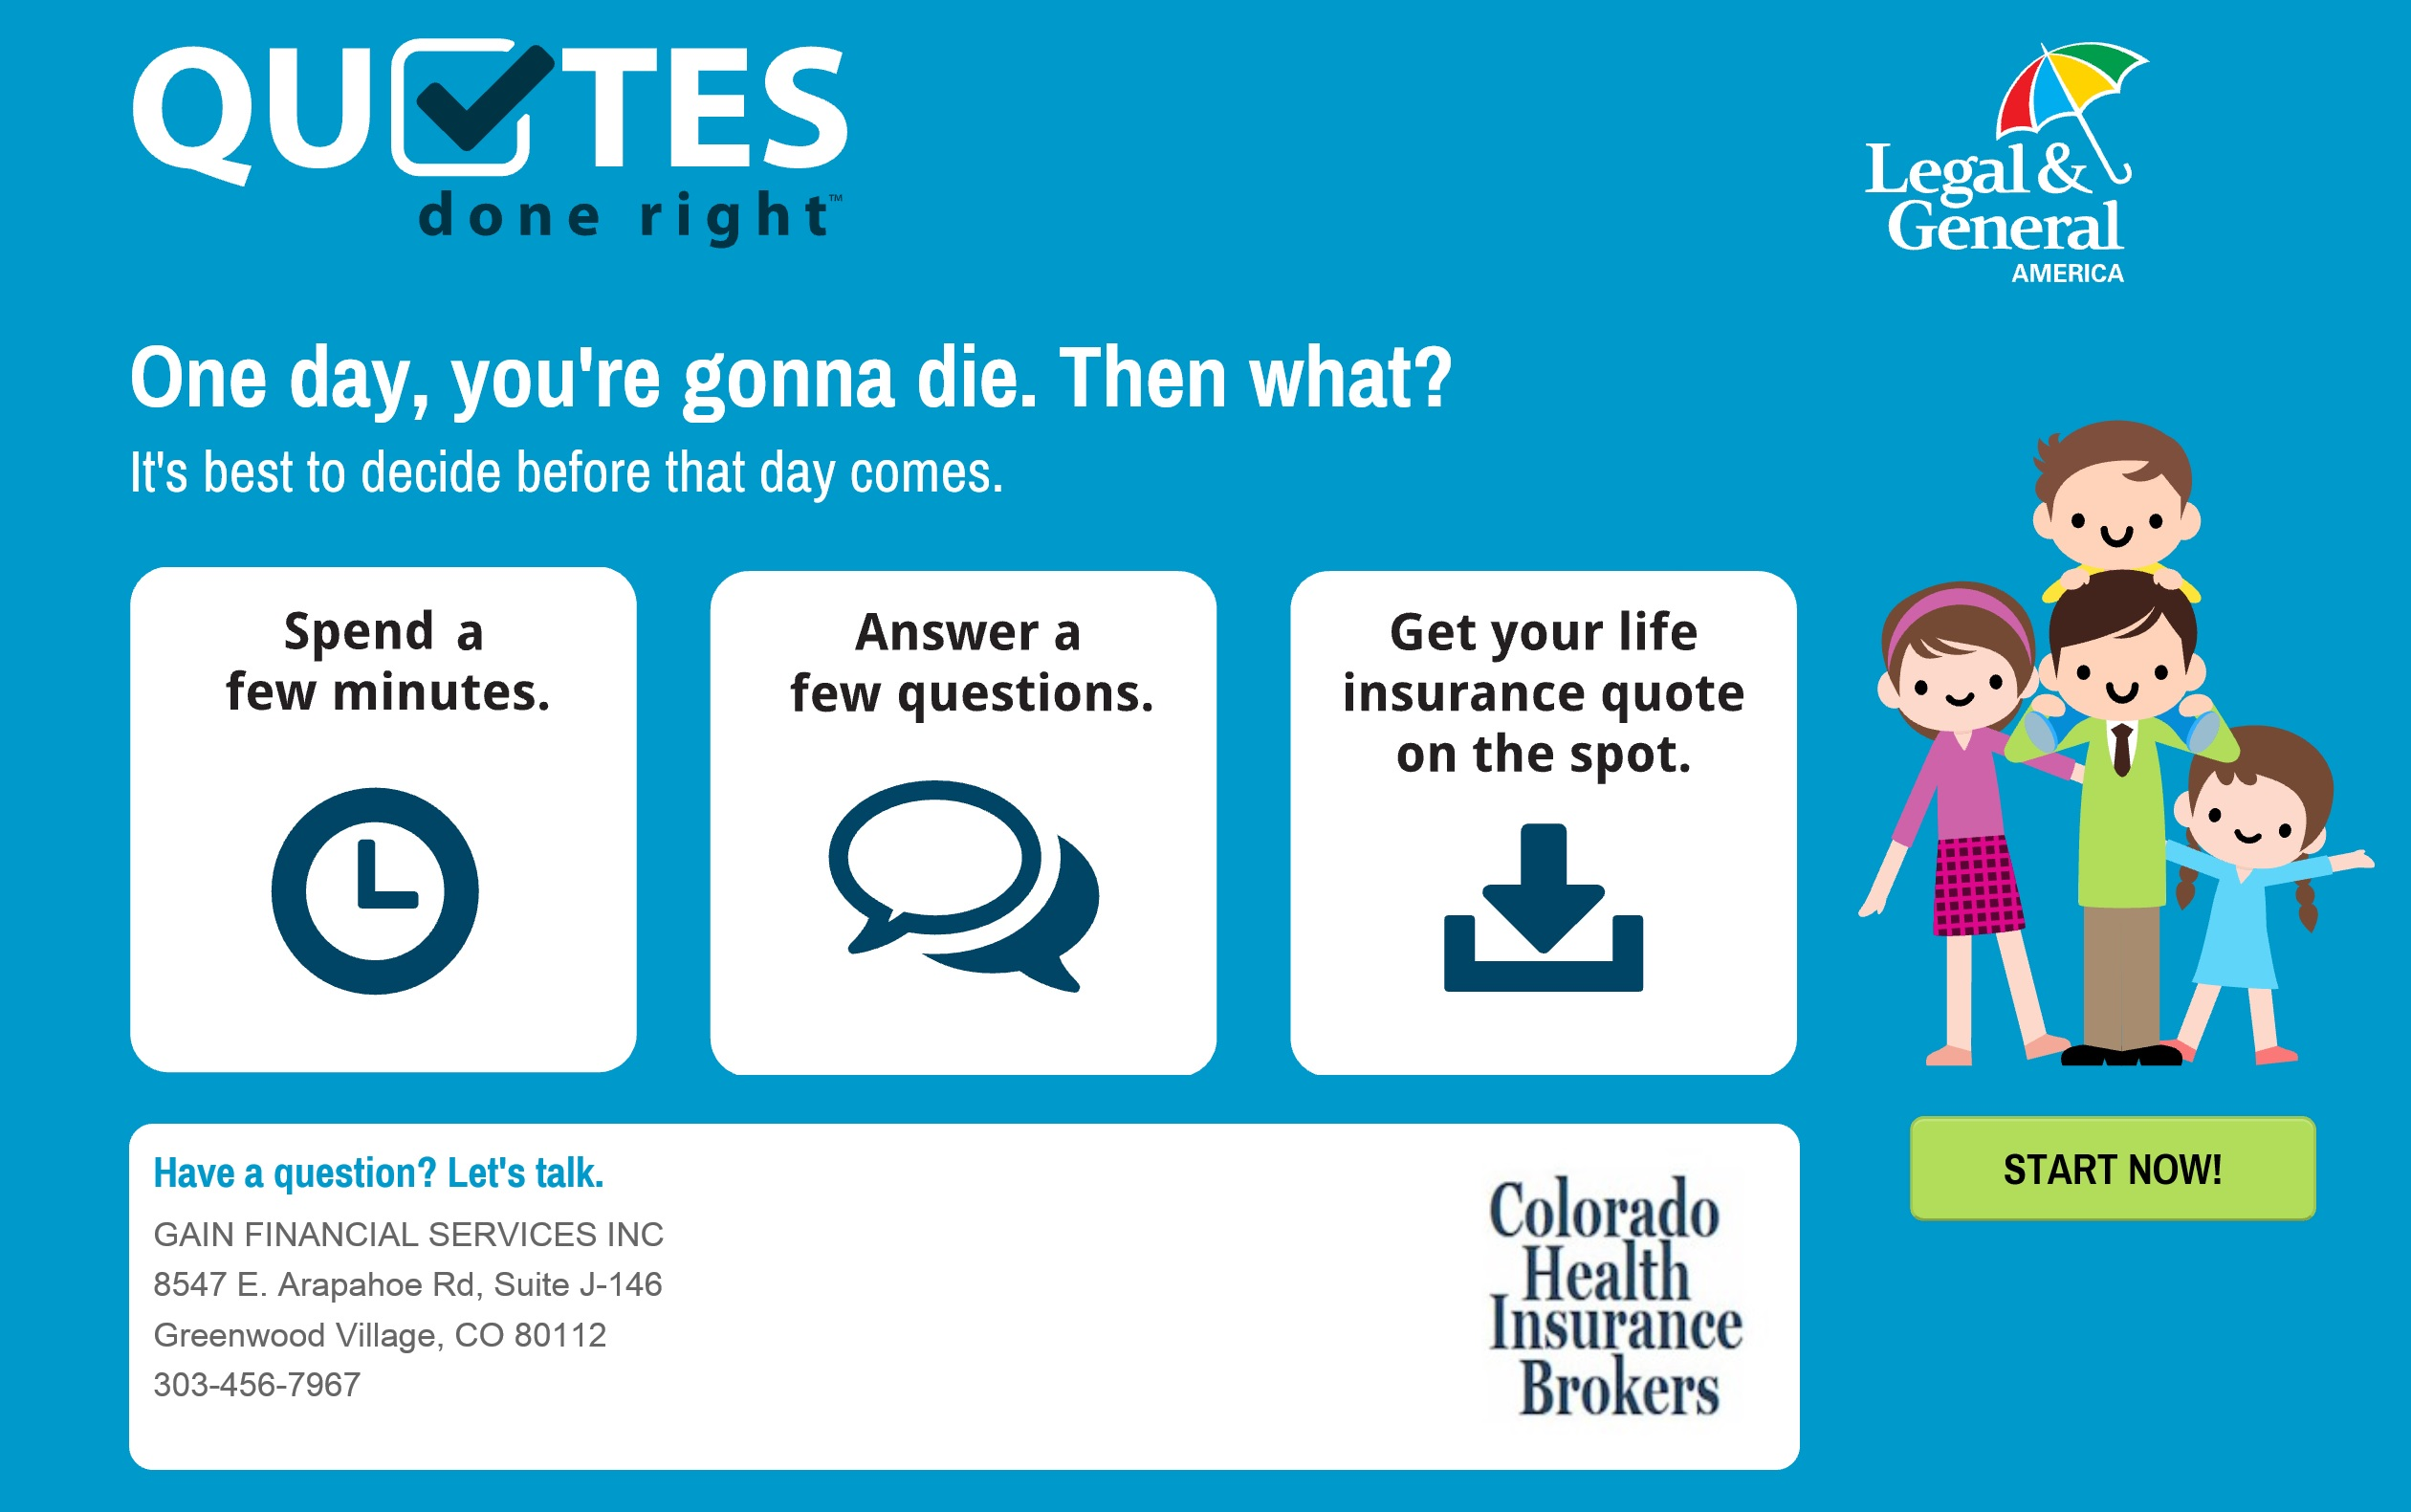 Online Quote For Life Insurance Colorado Health Insurance  Fast And Affordable Life Insurance